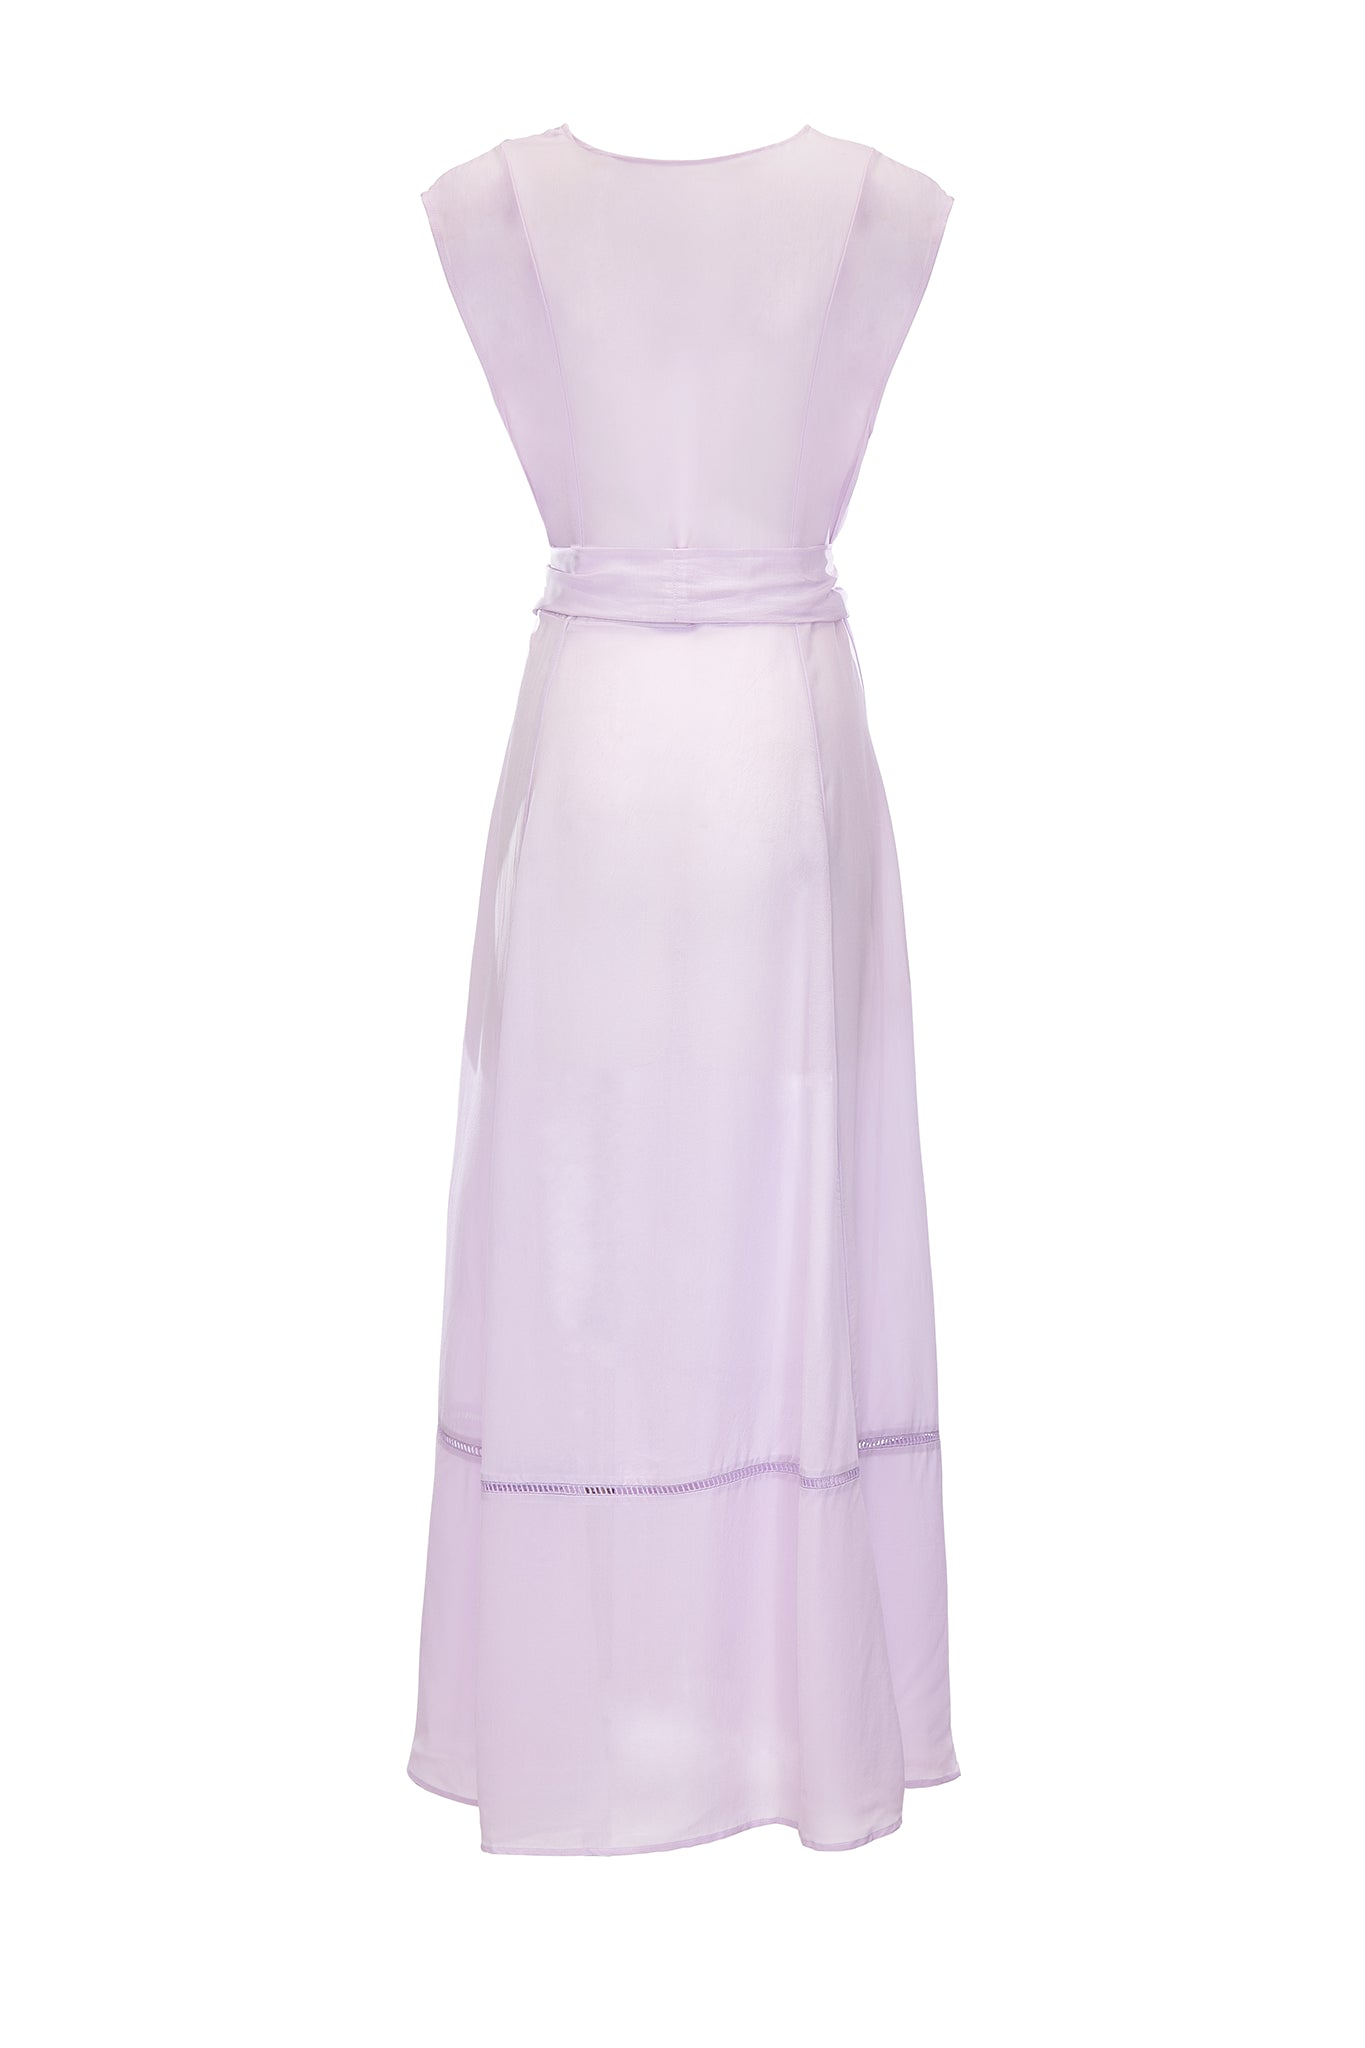 Audrey sleeveless maxi cover-up in lavender - product shot back